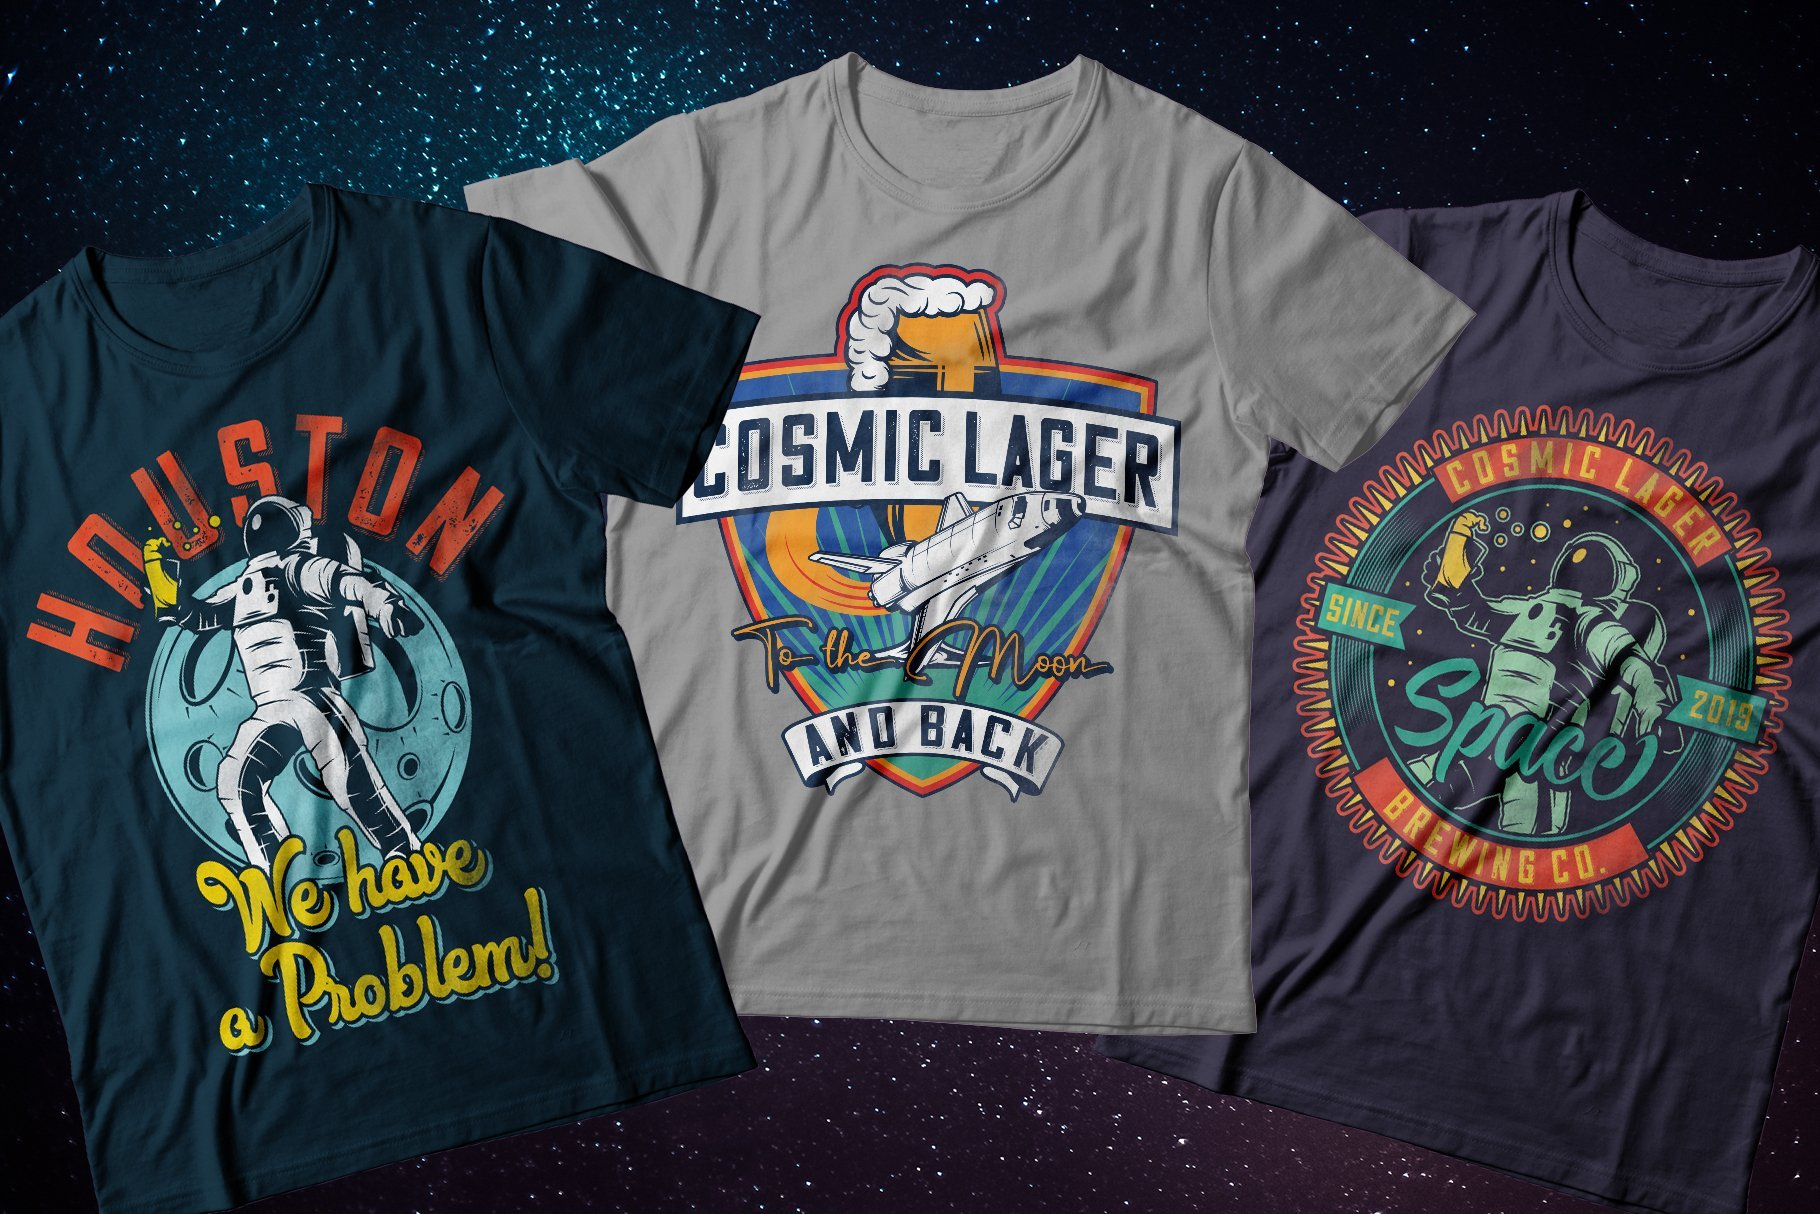 Retro style T-shirts with astronauts and other graphics.